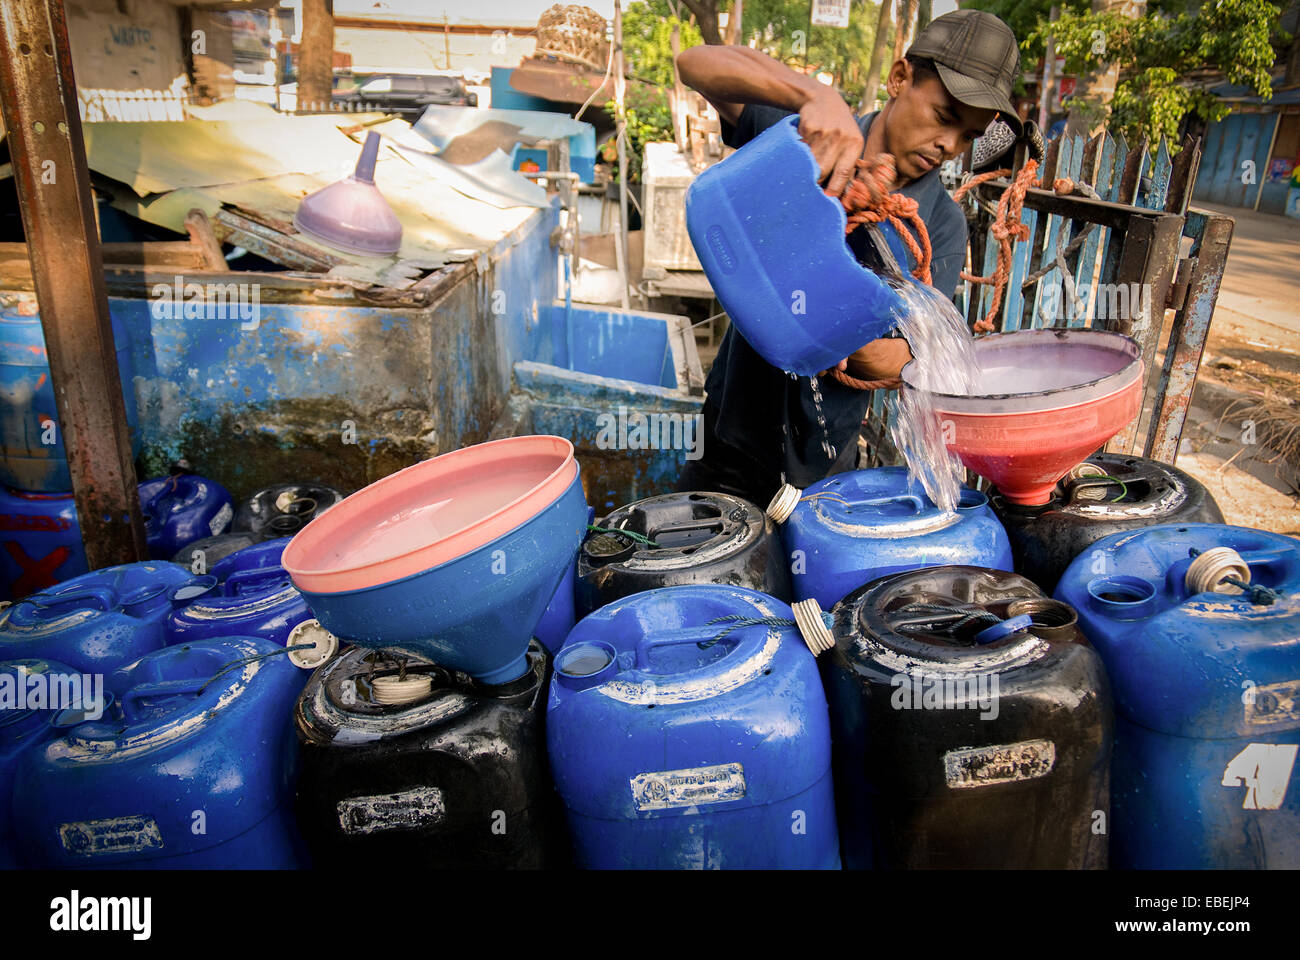 A man fills jerrycans on cart with water at a water distributor in Tanjung Priok, Jakarta, Indonesia. - Stock Image